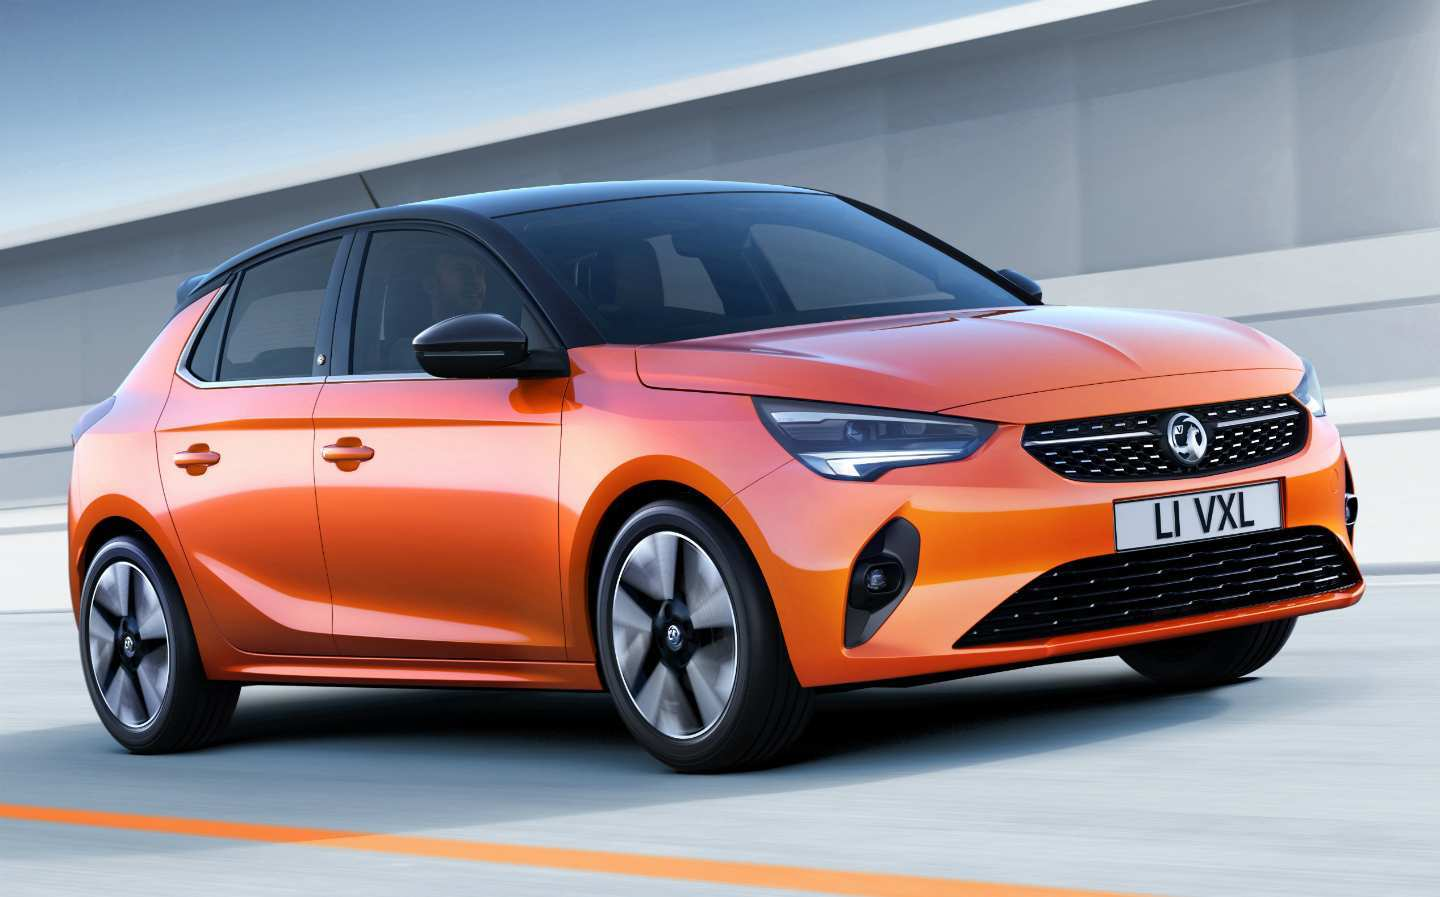 95 Great On Star Opel 2020 Redesign with On Star Opel 2020